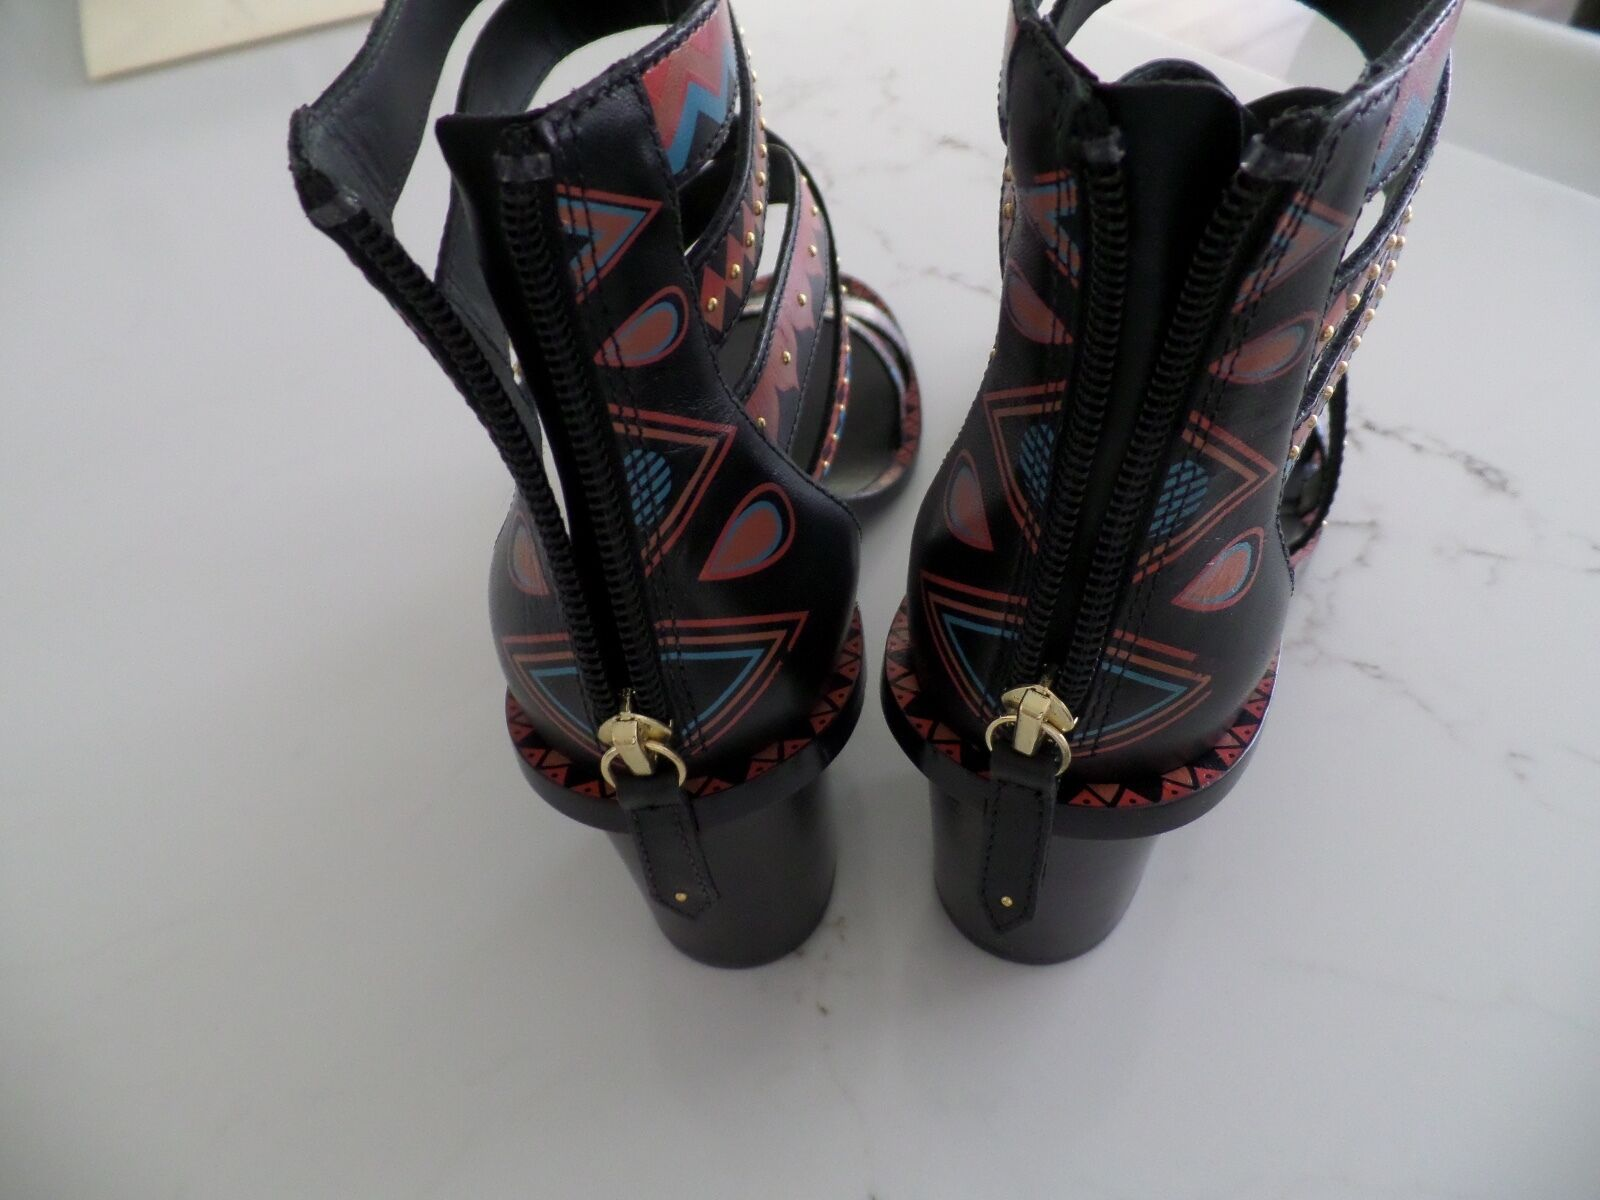 New Latest ASH ASH ASH Papaya heel strappy multi color shoes w gold studs sz 41 US 10 a75fe6